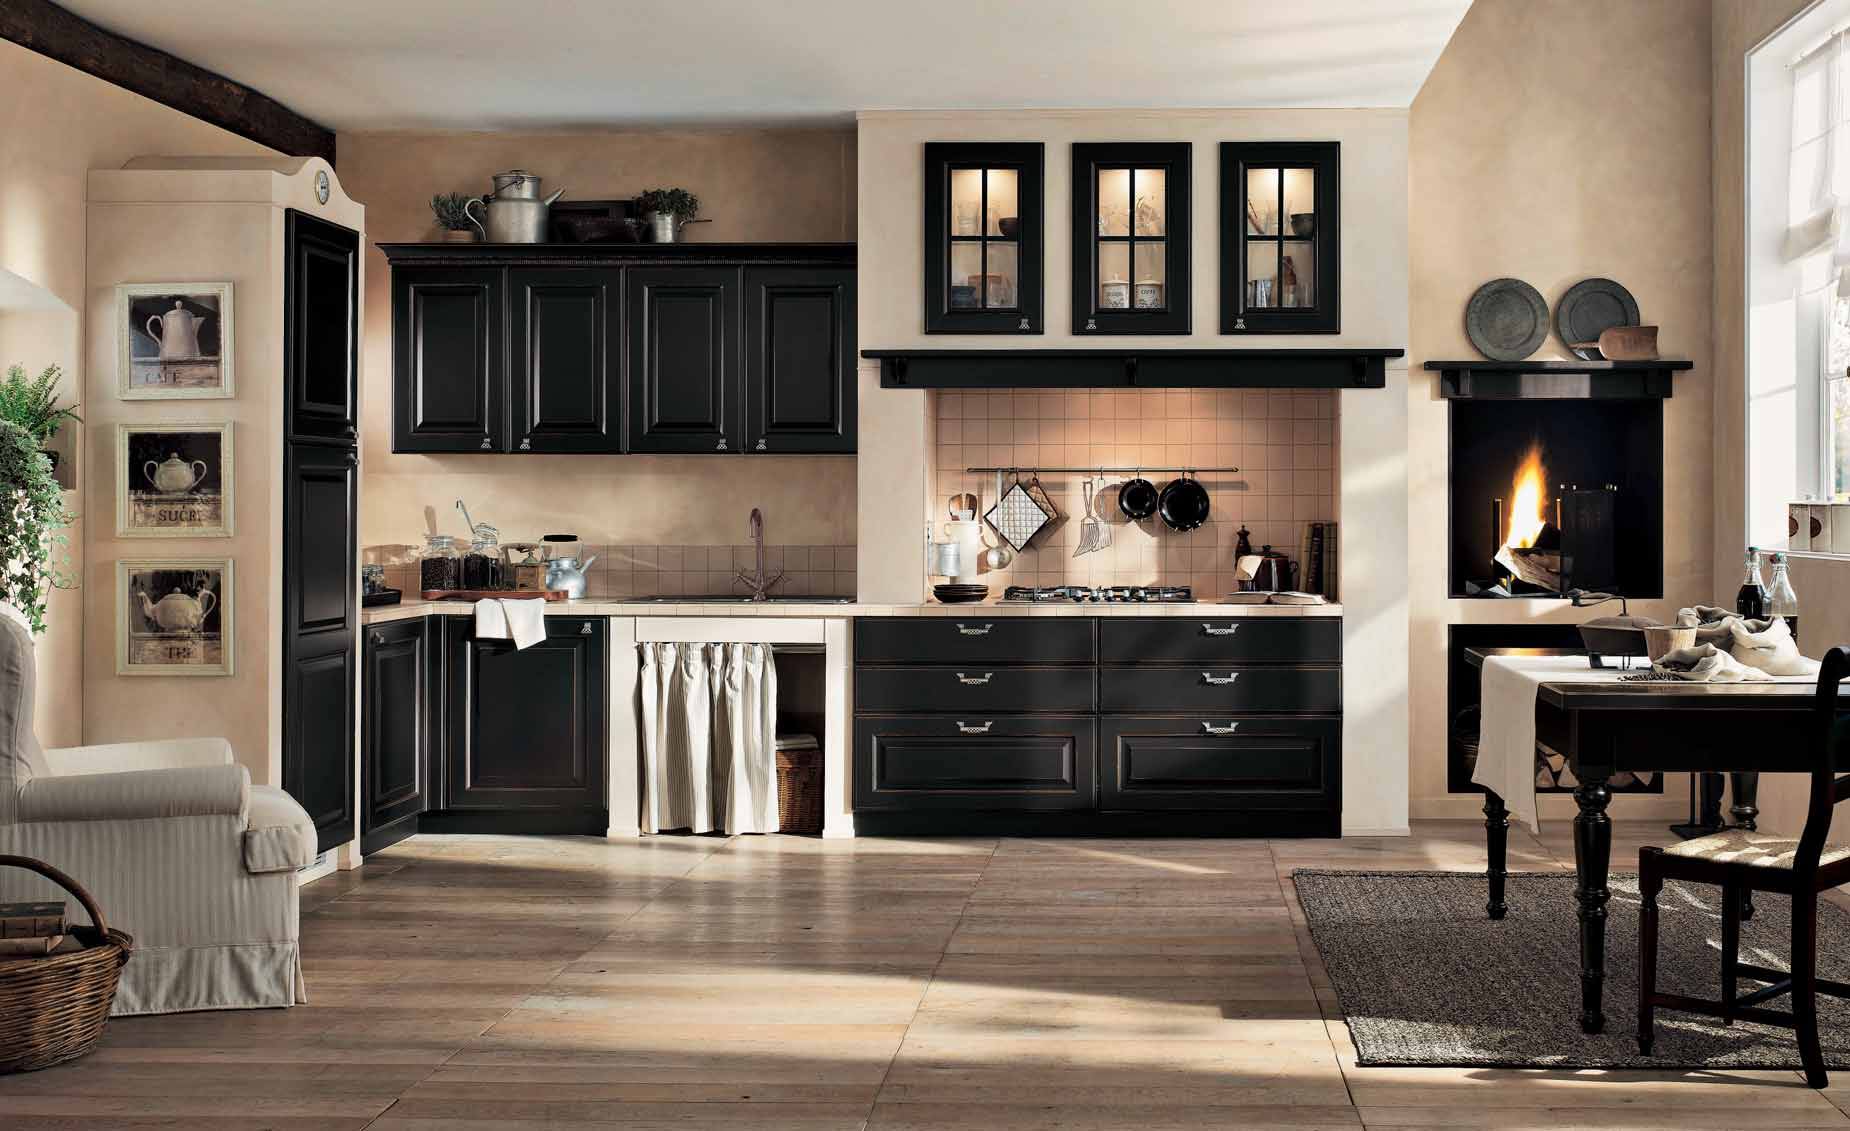 Classic Kitchen In Black And